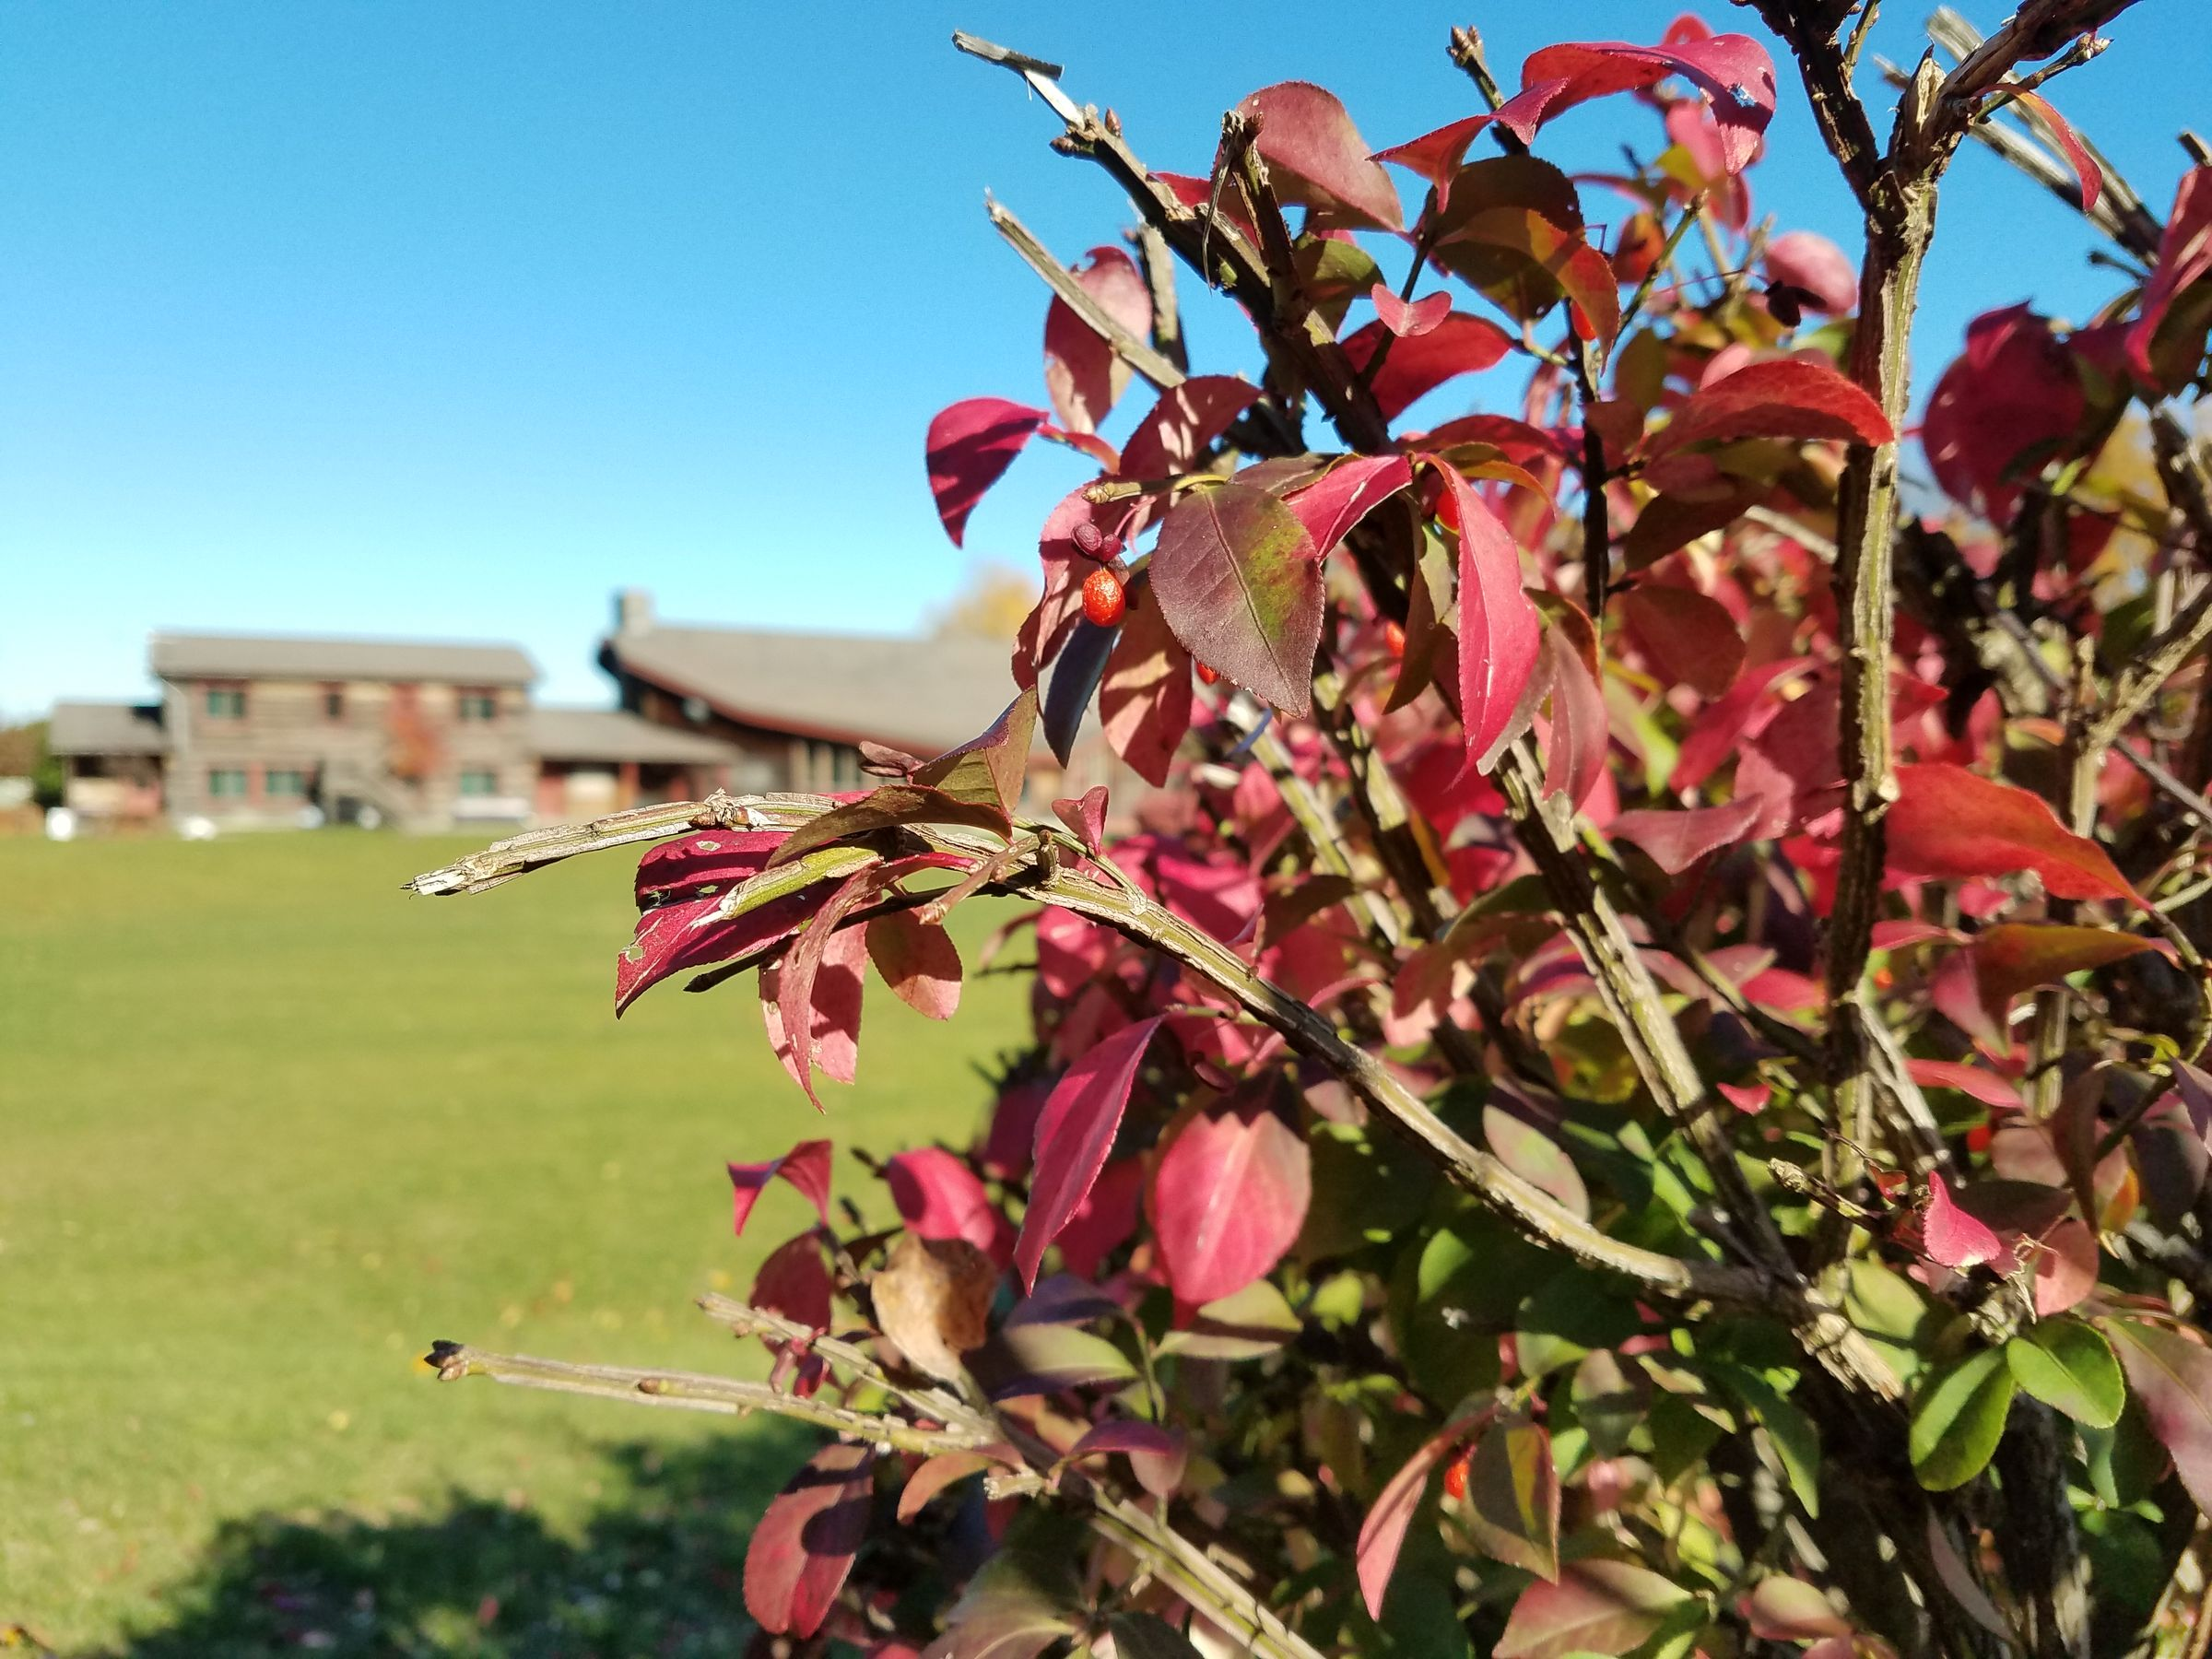 A close-up photograph of a manicured hedge of winged burning bush, showing off its bright red leaves and squared-off, winged branches. A large camp building is in the background, out of focus, and an empty green lawn between there and the hedge. It's a clear, bright day with a blue sky.